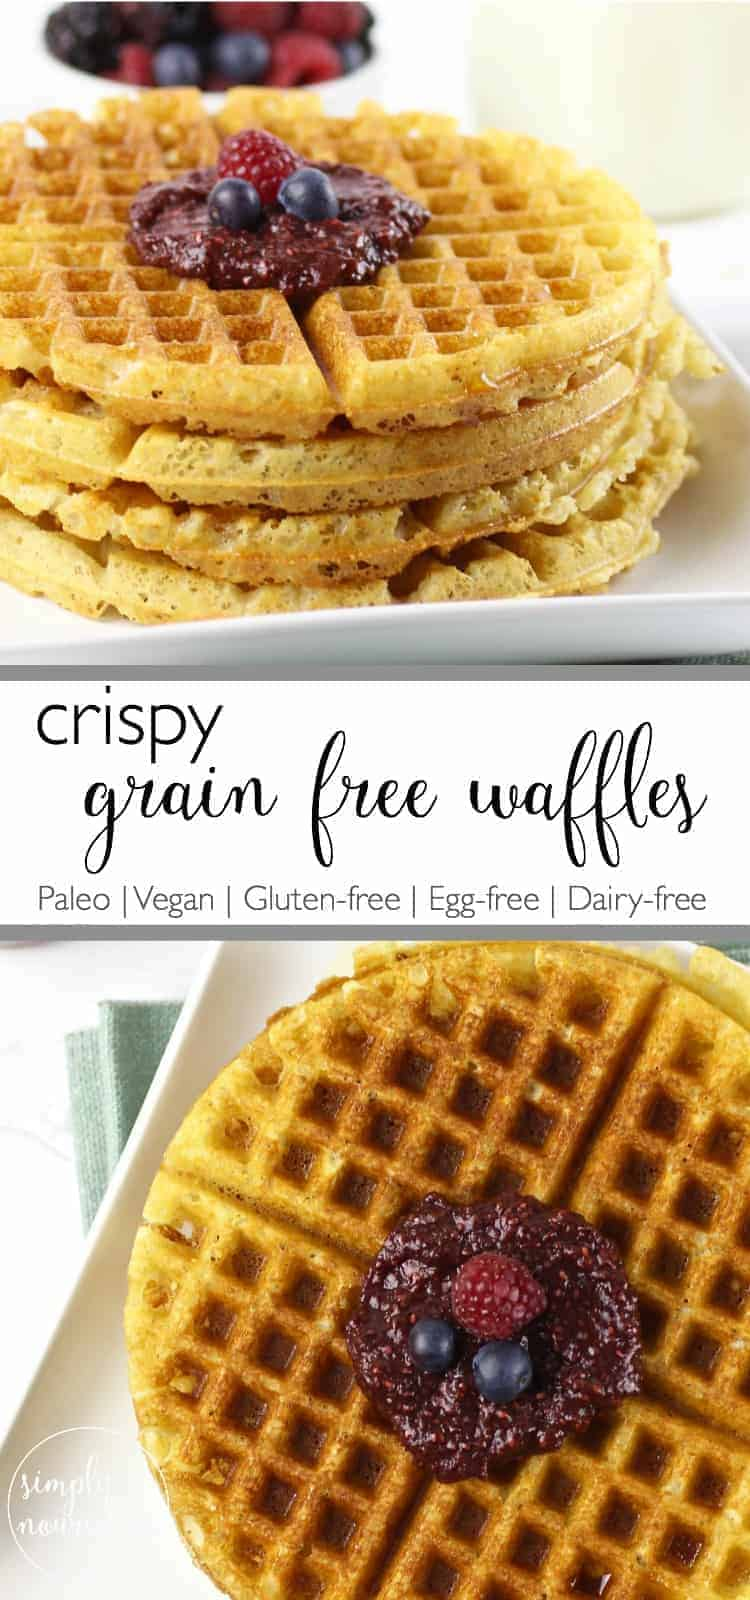 Crispy Grain-free Waffles | Paleo waffle recipe | Vegan vegan waffle recipe | Gluten-Free waffle recipe | egg-free waffle recipe | healthy waffle recipe | healthier breakfast recipes || The Real Food Dietitians #veganwaffles #healthywaffles #glutenfreebreakfast